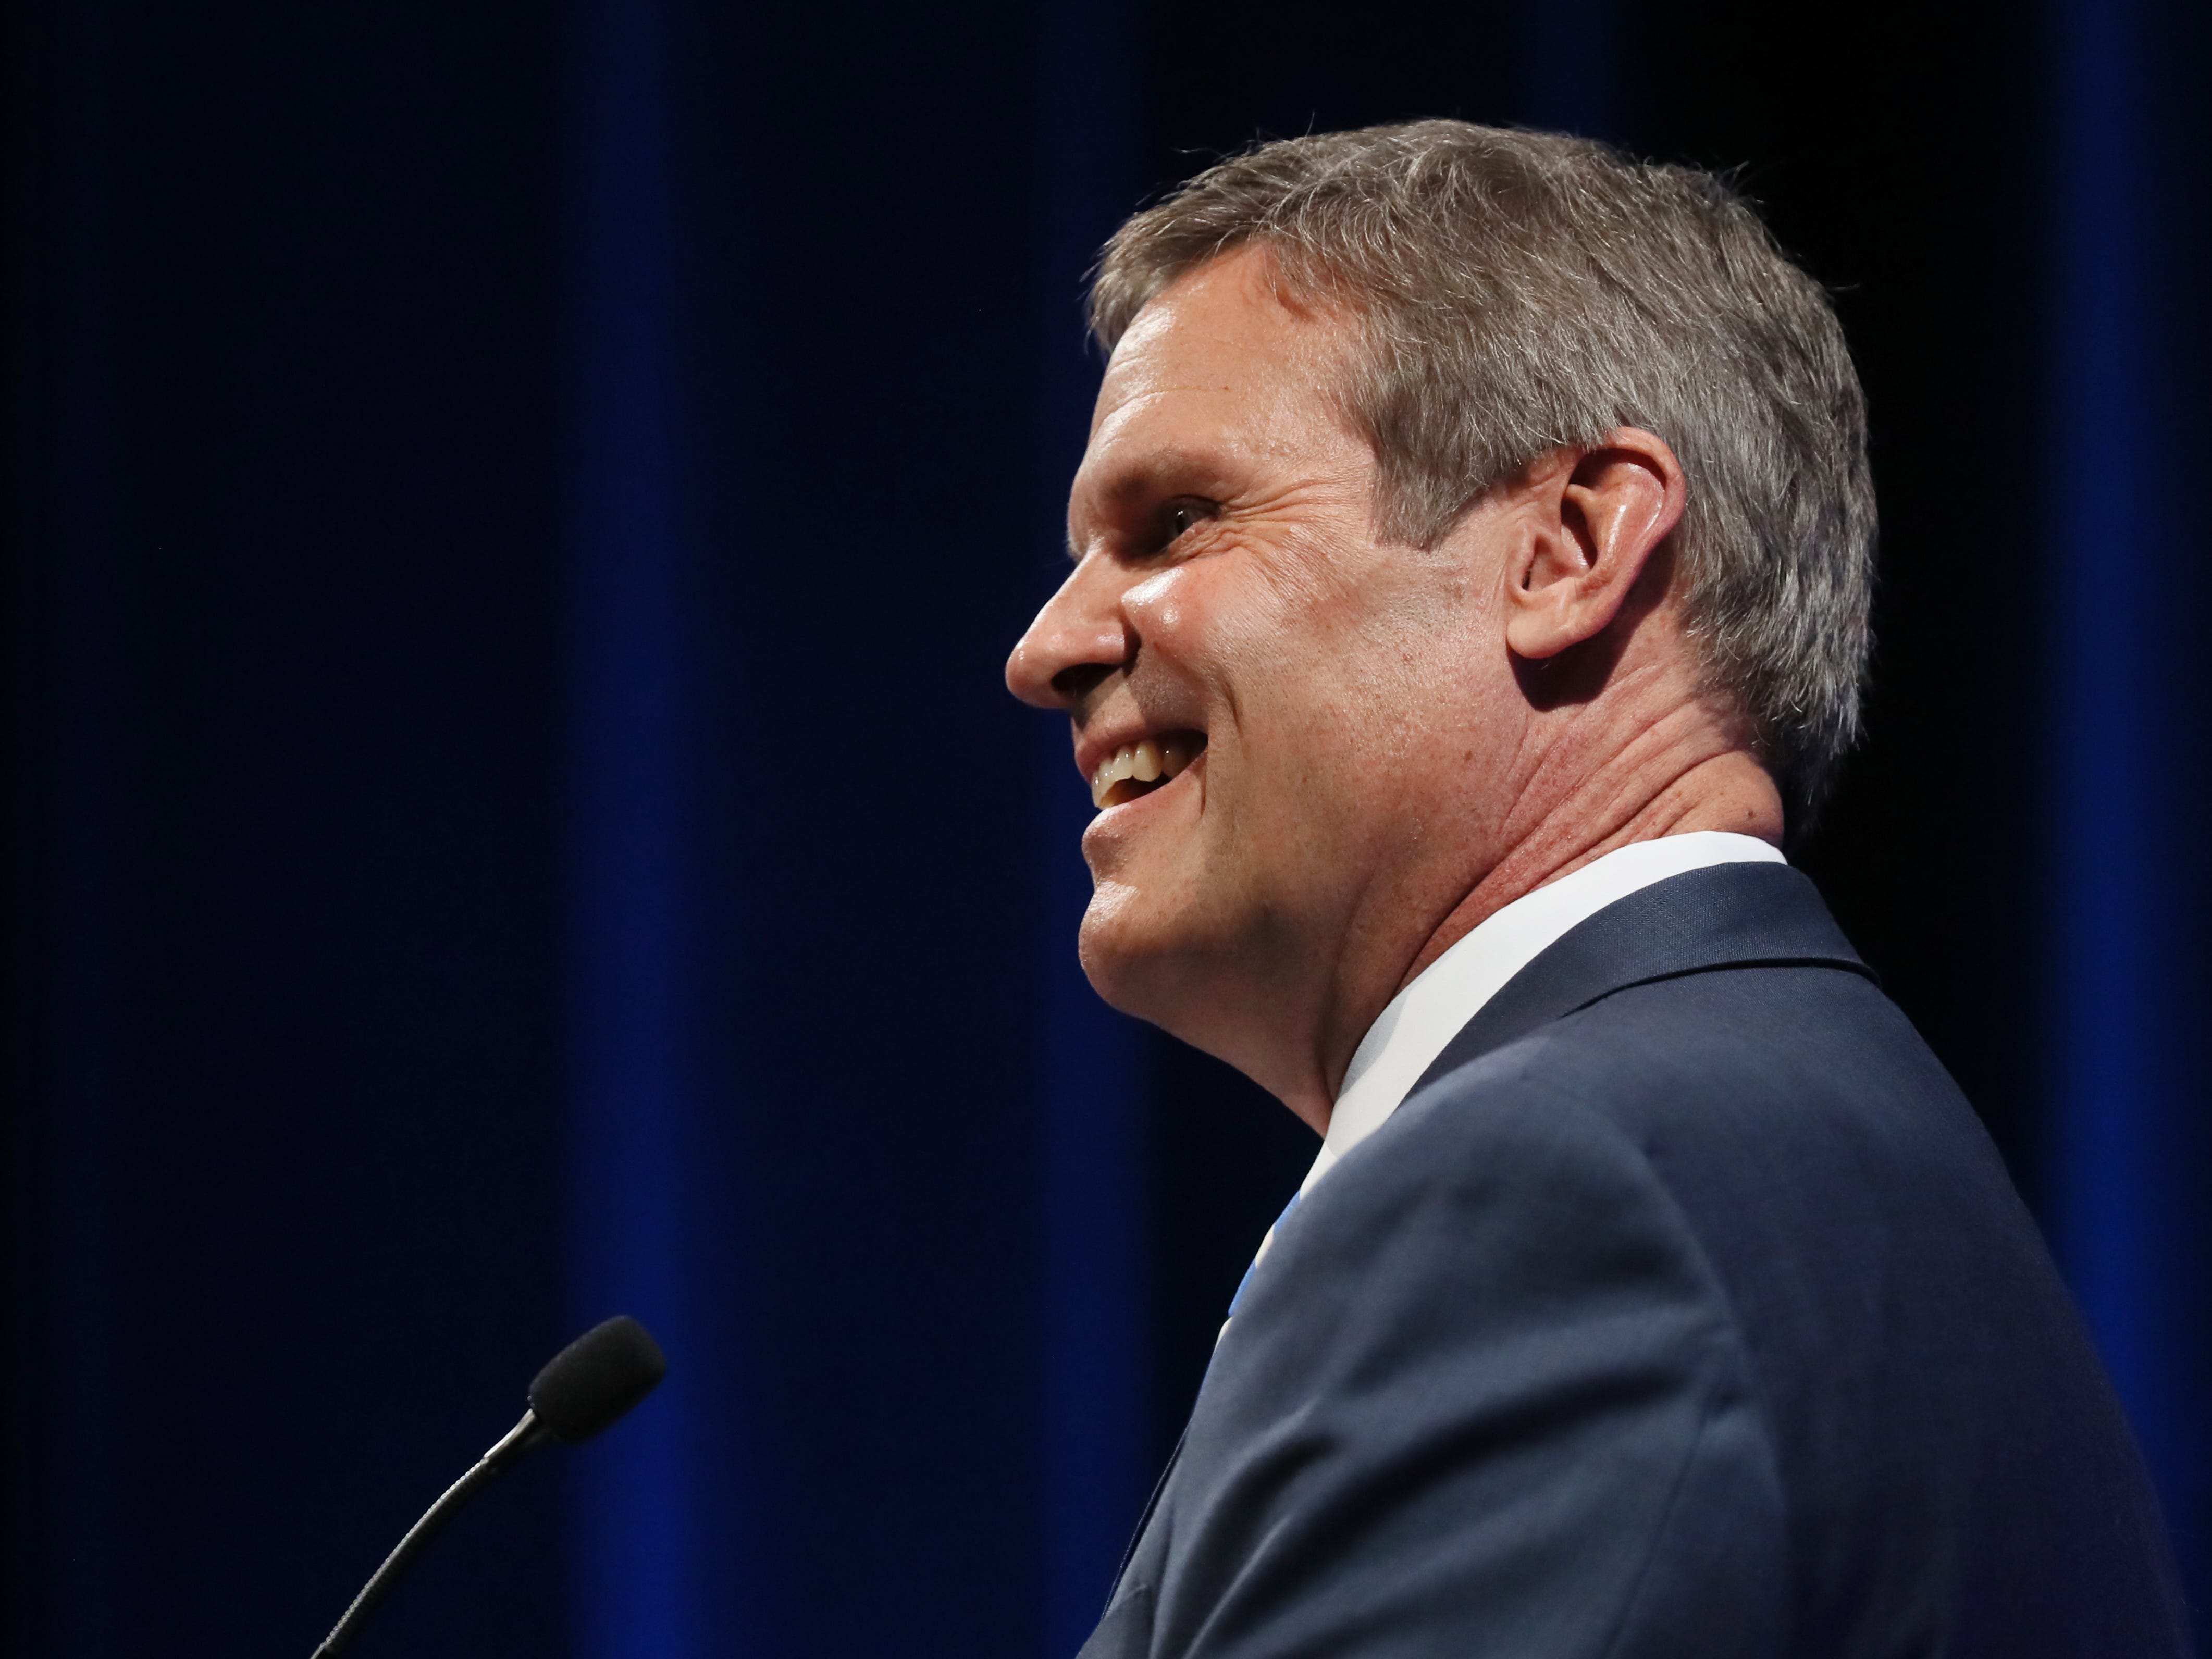 Republican Bill Lee looks at the crowd at the gubernatorial debate at the University of Memphis' Michael D. Rose Theater in Memphis, Tenn., on Tuesday, Oct. 2, 2018.